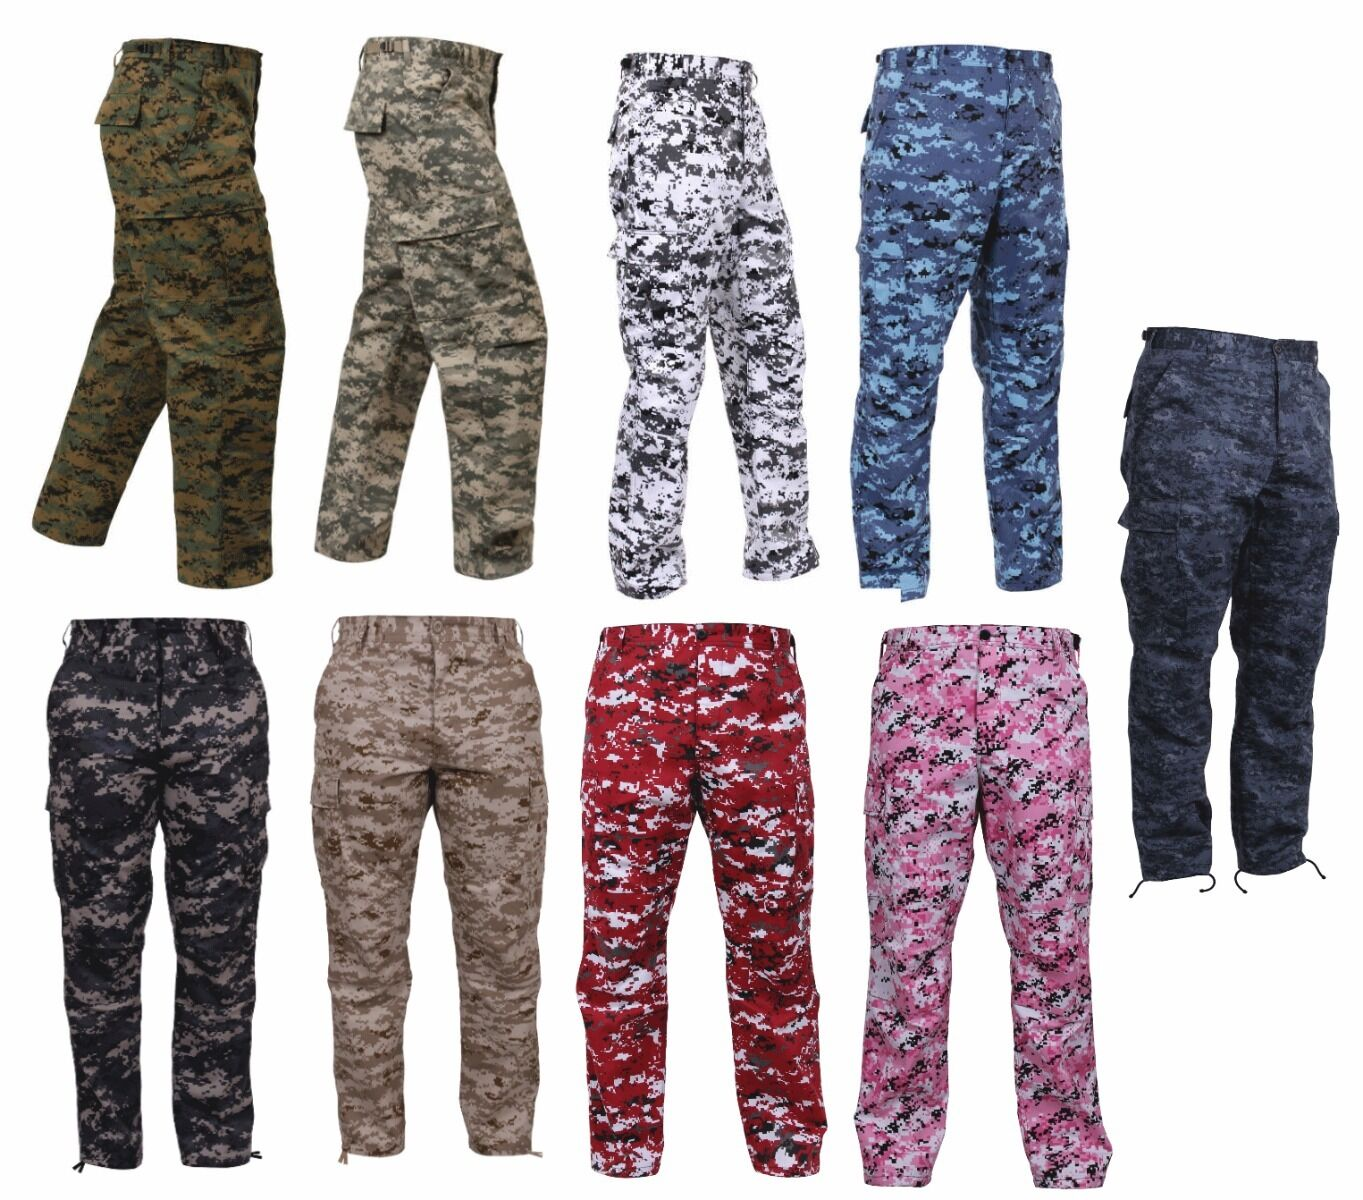 BDU Pants Digitial Camouflage Military Cargo Fatigue redhco